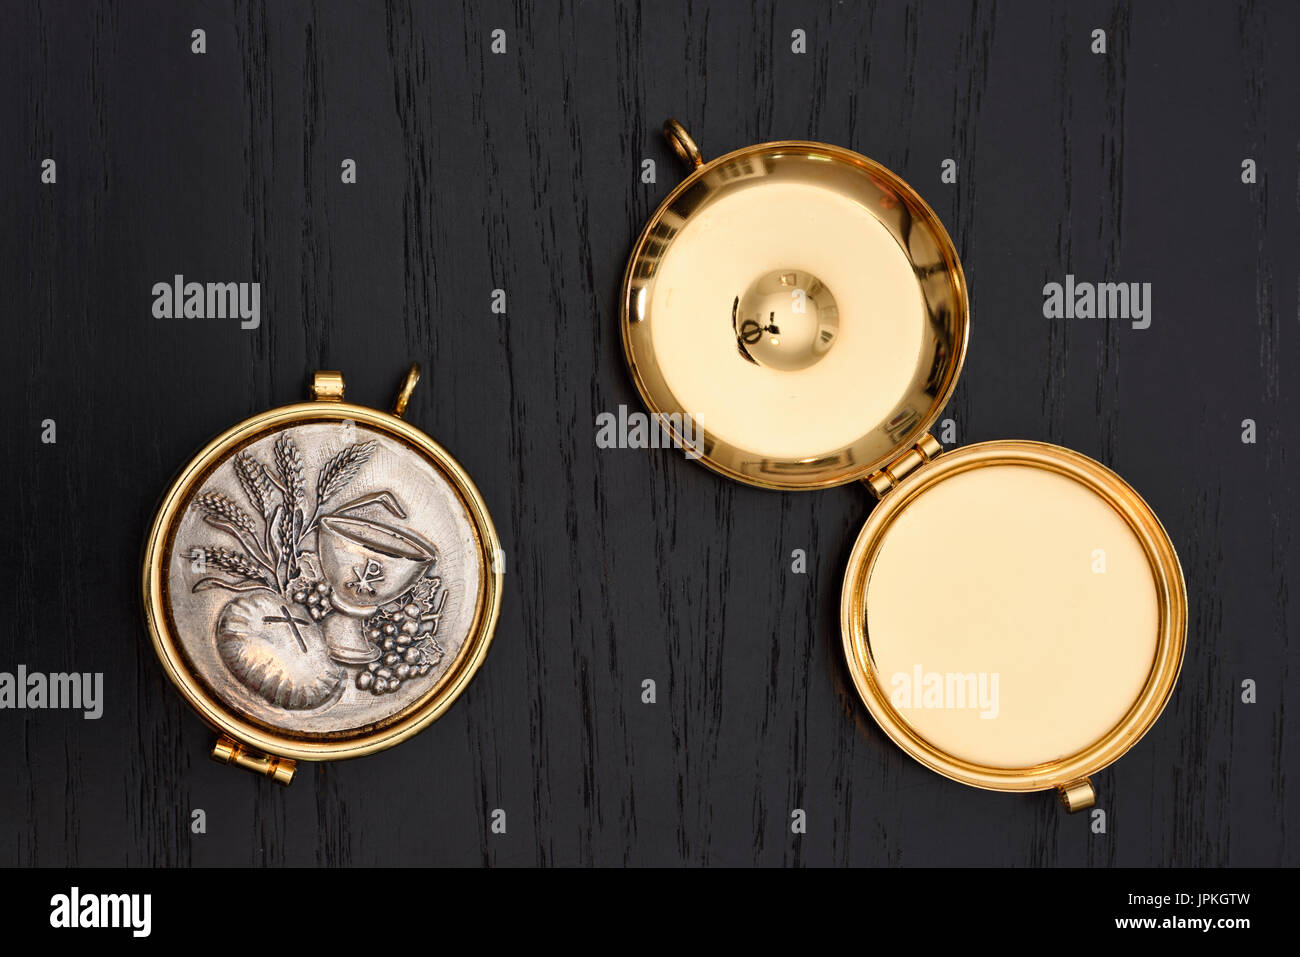 Gold Pyx to carry the consecrated eucharistic communion wafer host the holy body of Jesus Christ - Stock Image